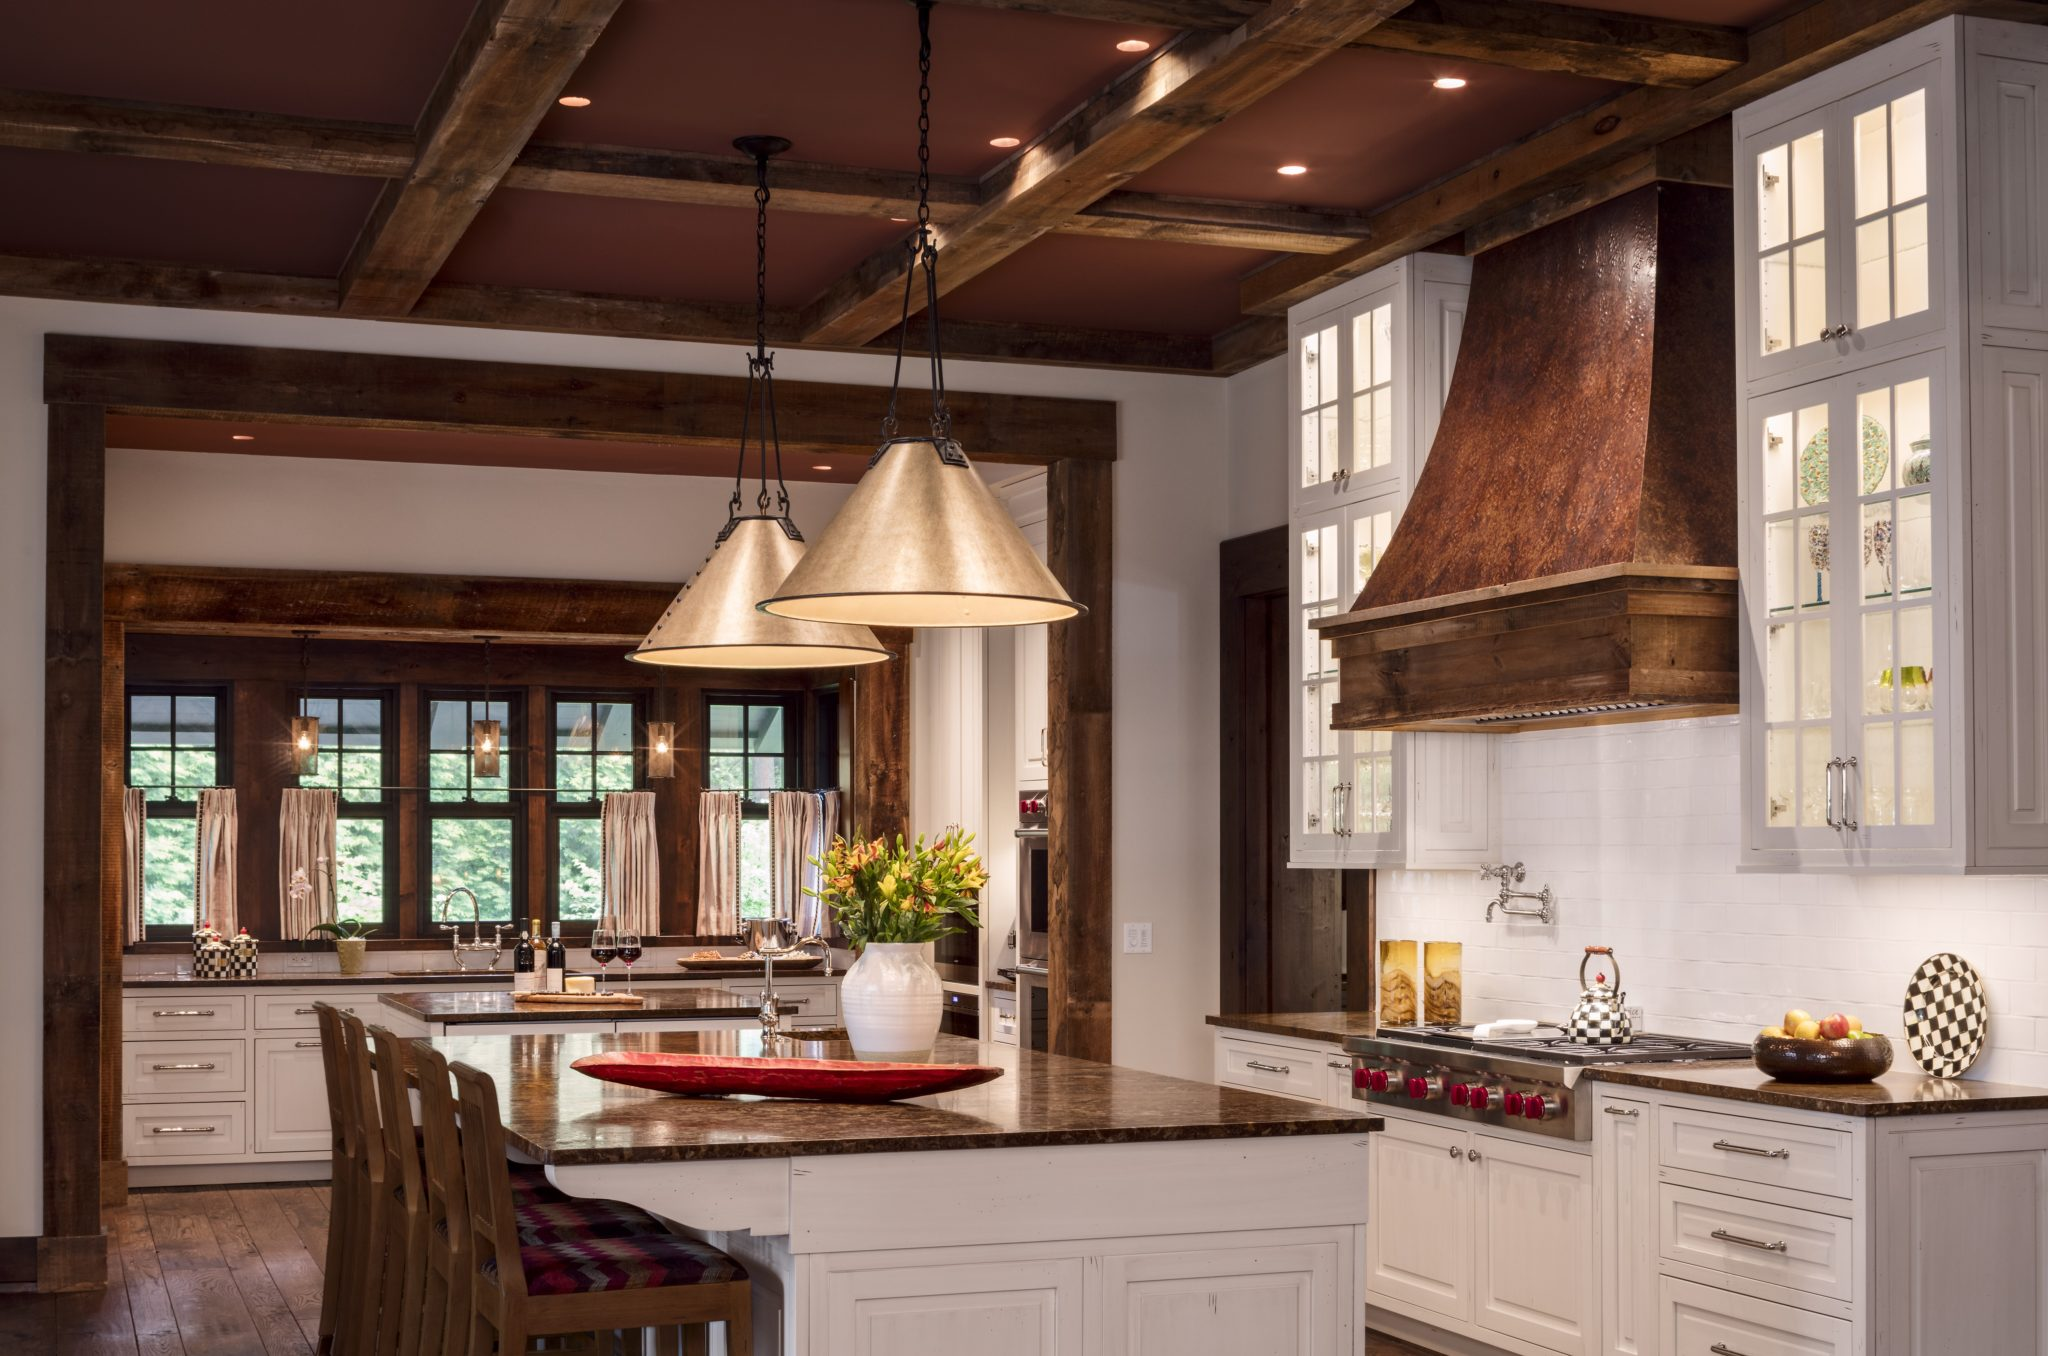 Rustic kitchen features industrial lighting, wood trim and a large island by Wade Weissmann Architecture Inc.